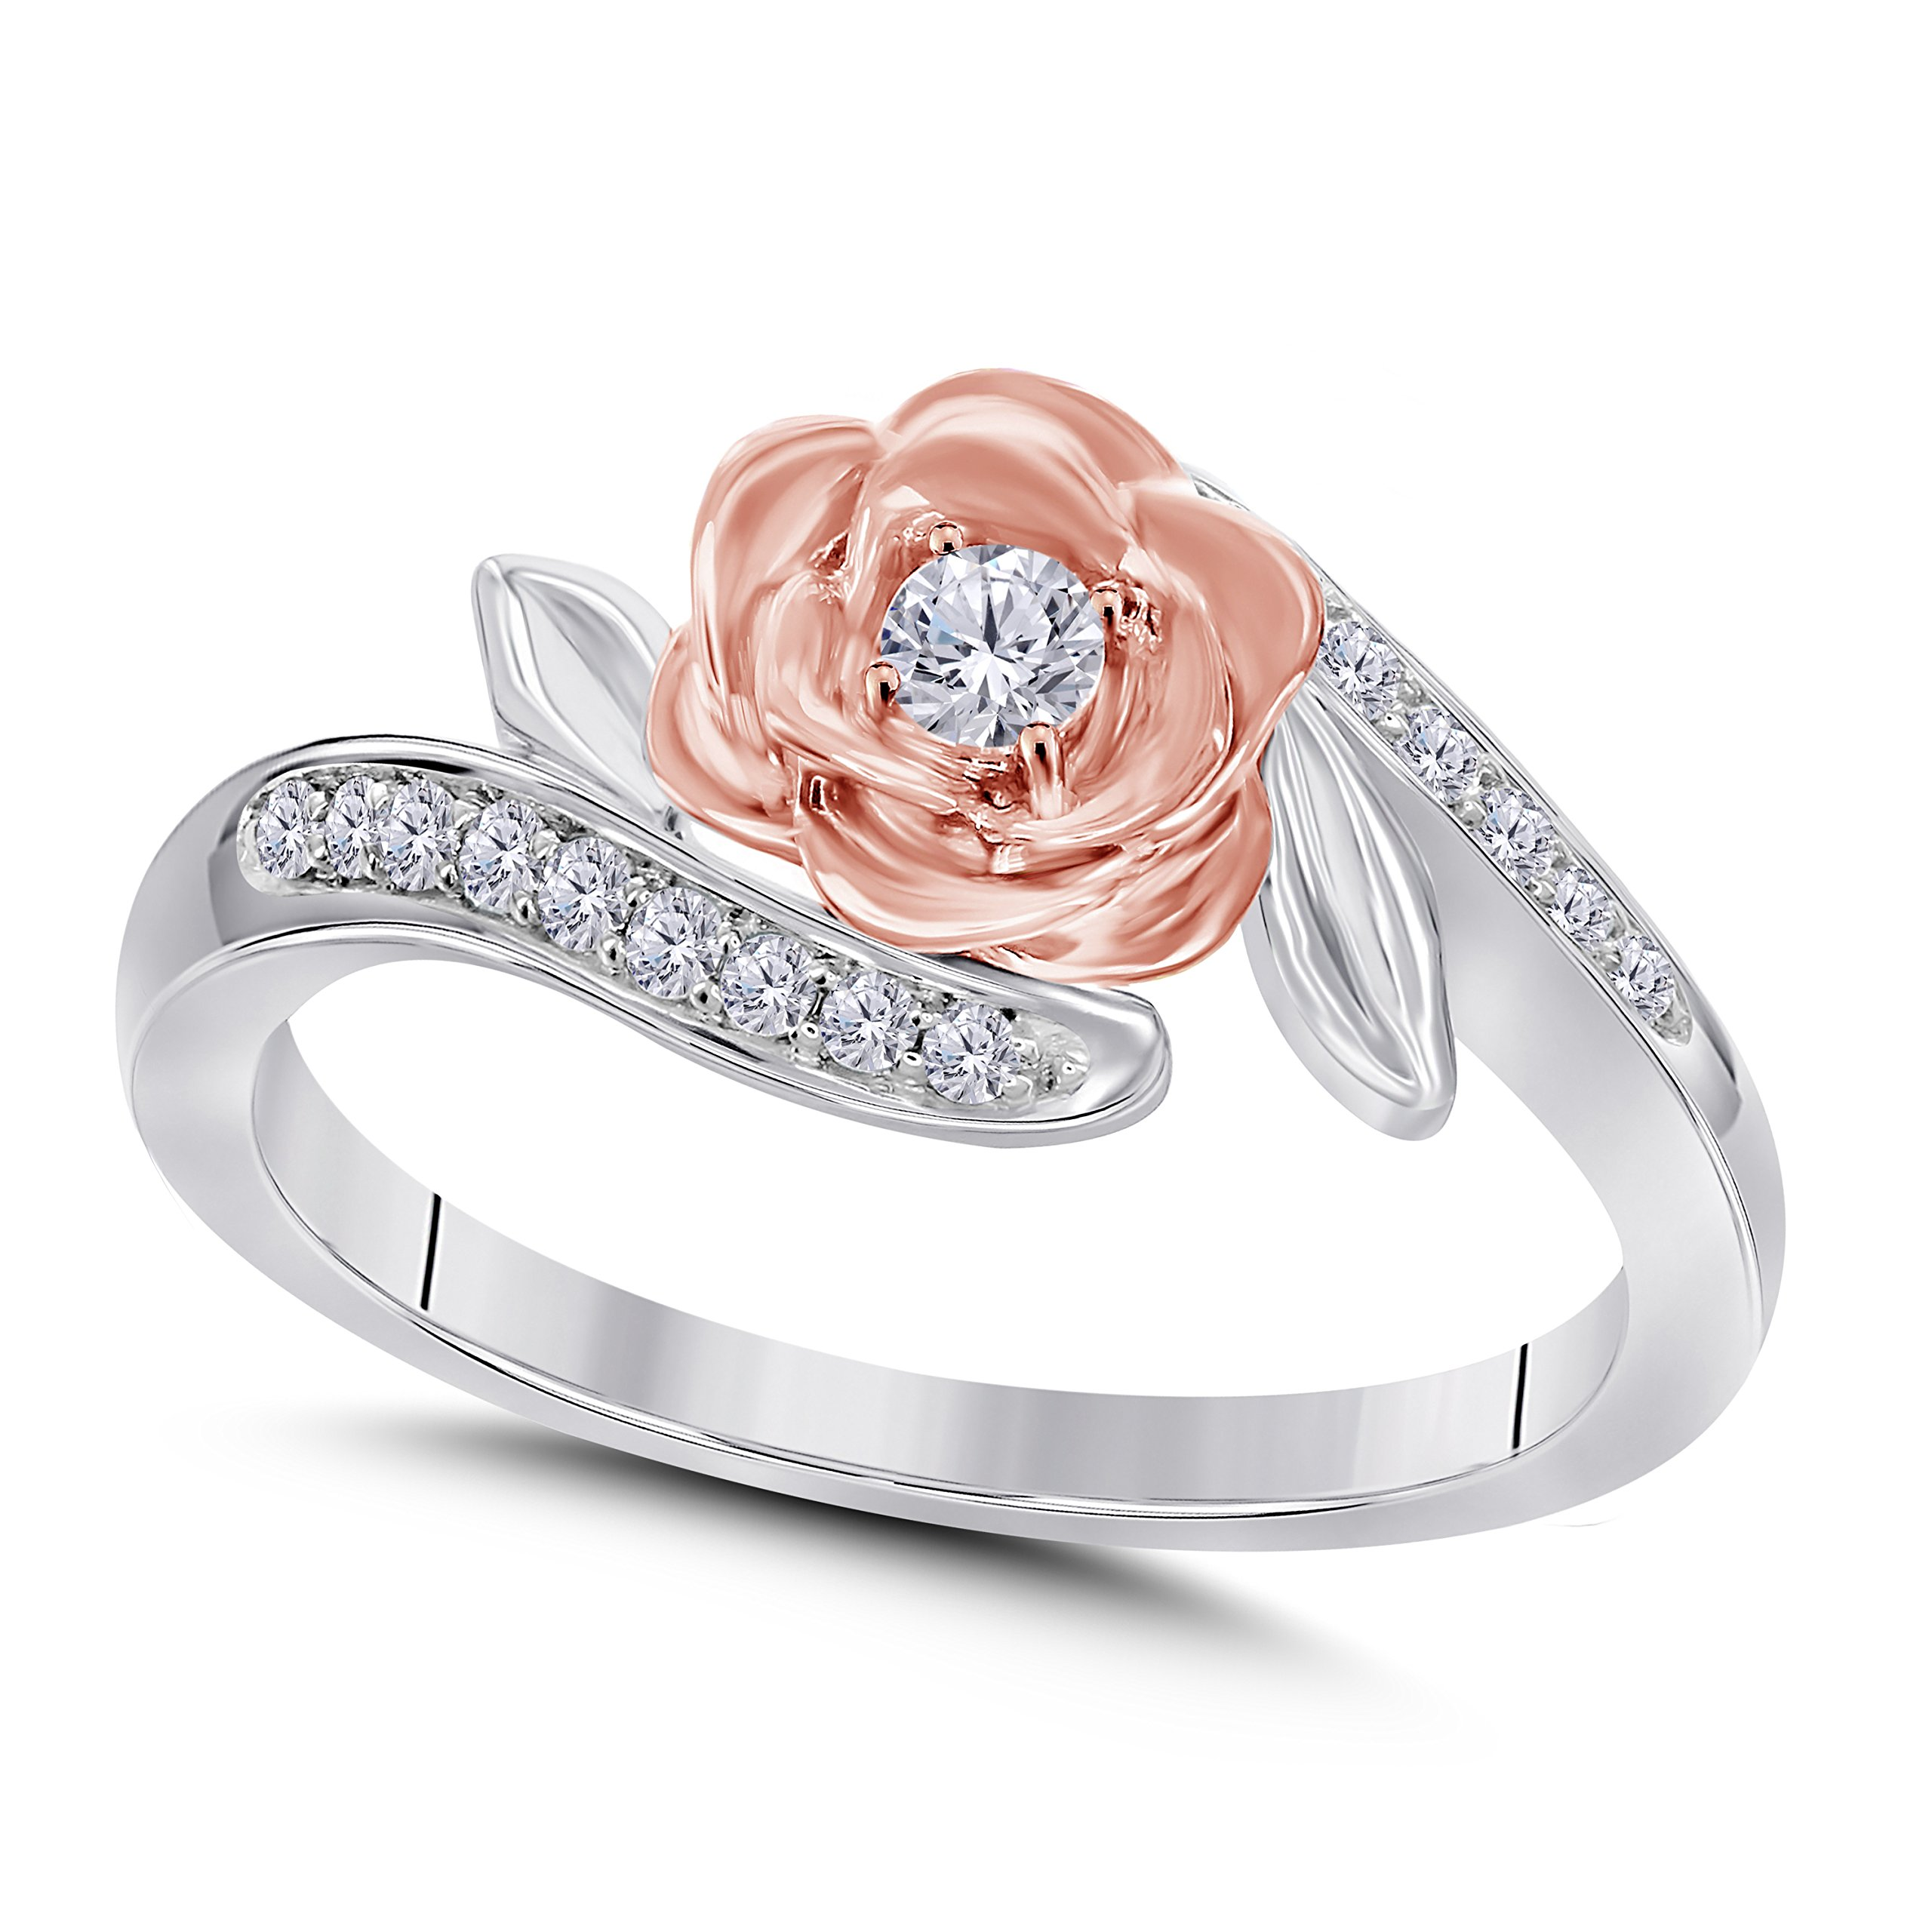 DreamJewels Belles 14K Rose and White Gold Plated White CZ Diamond Fashion Ring 1/4ctw (9) Alloy